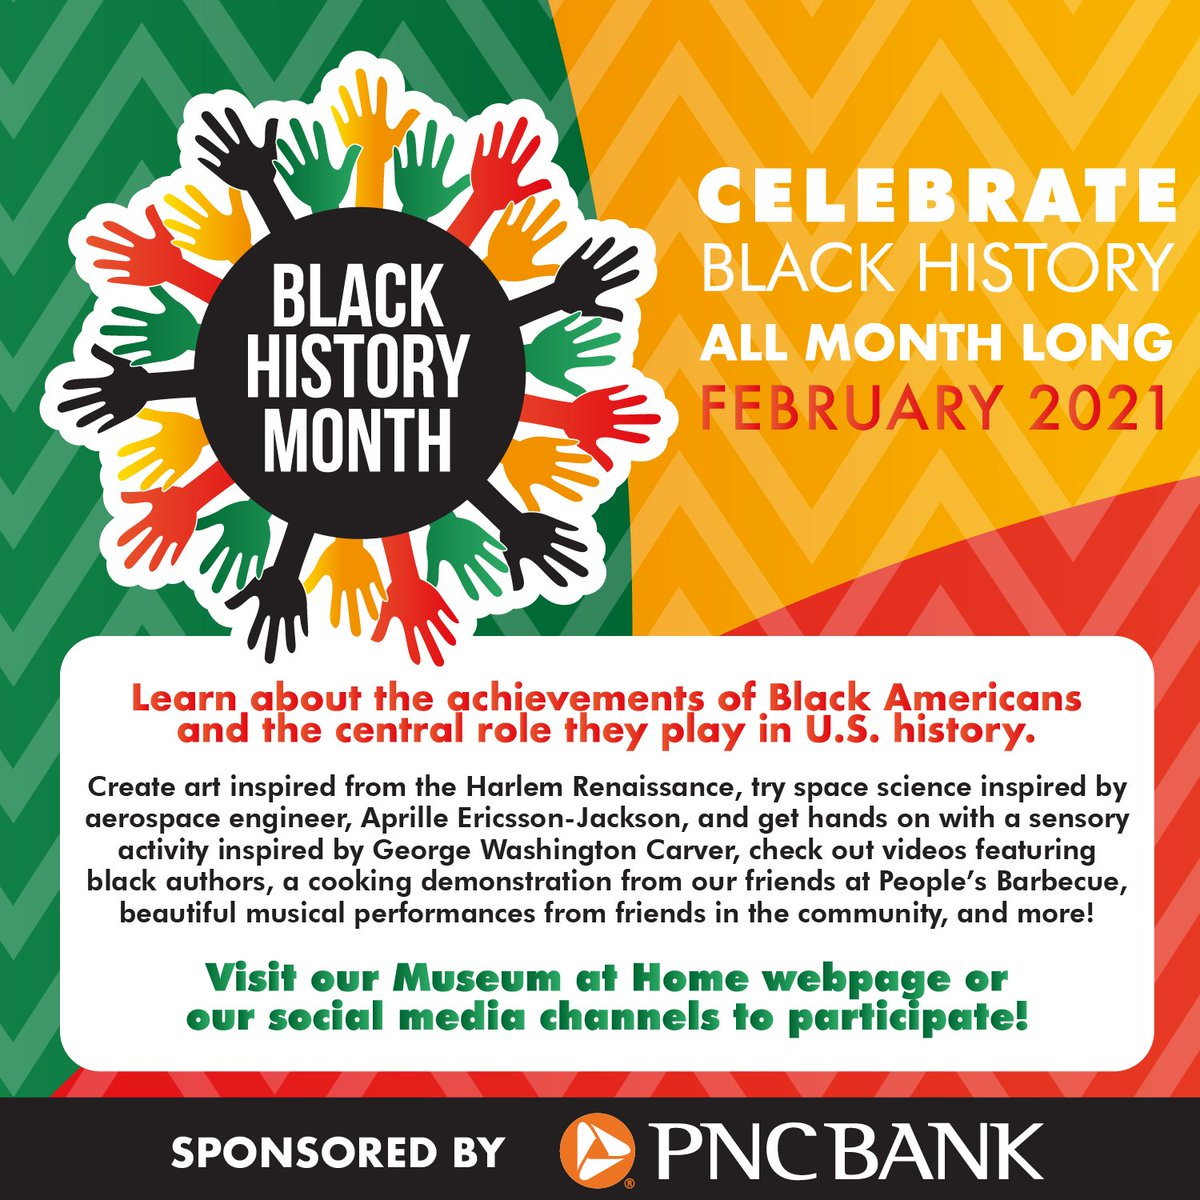 Celebrate #blackhistorymonth with us! Join us for free virtual story times, art activities, songs and more. Sponsored by @PNCBank  https://t.co/k0riBByRm3 https://t.co/x85EcayzUE